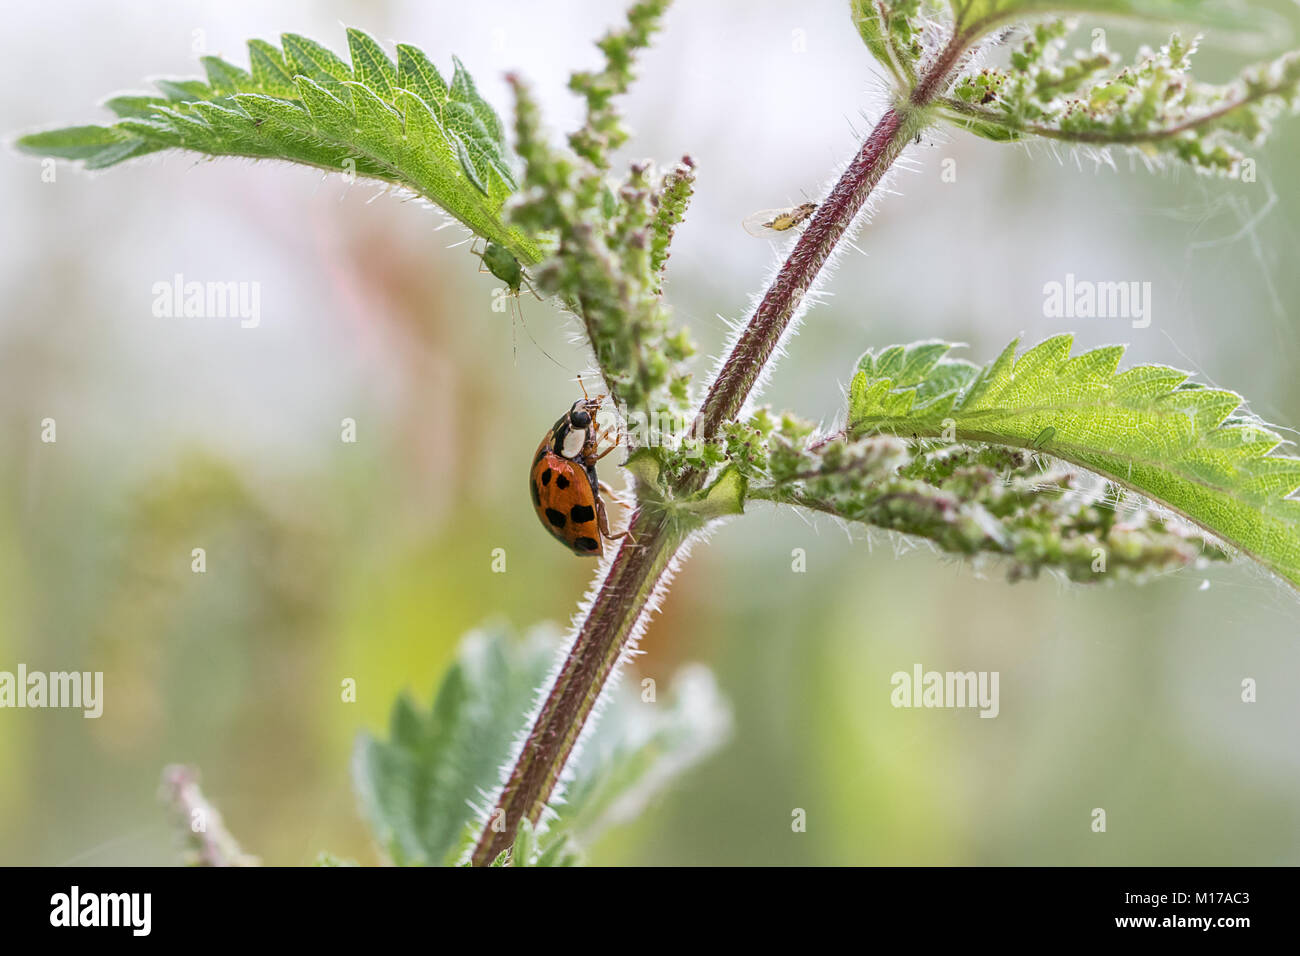 Ladybird on plant  stem. Close up in frame with out of focus background Stock Photo